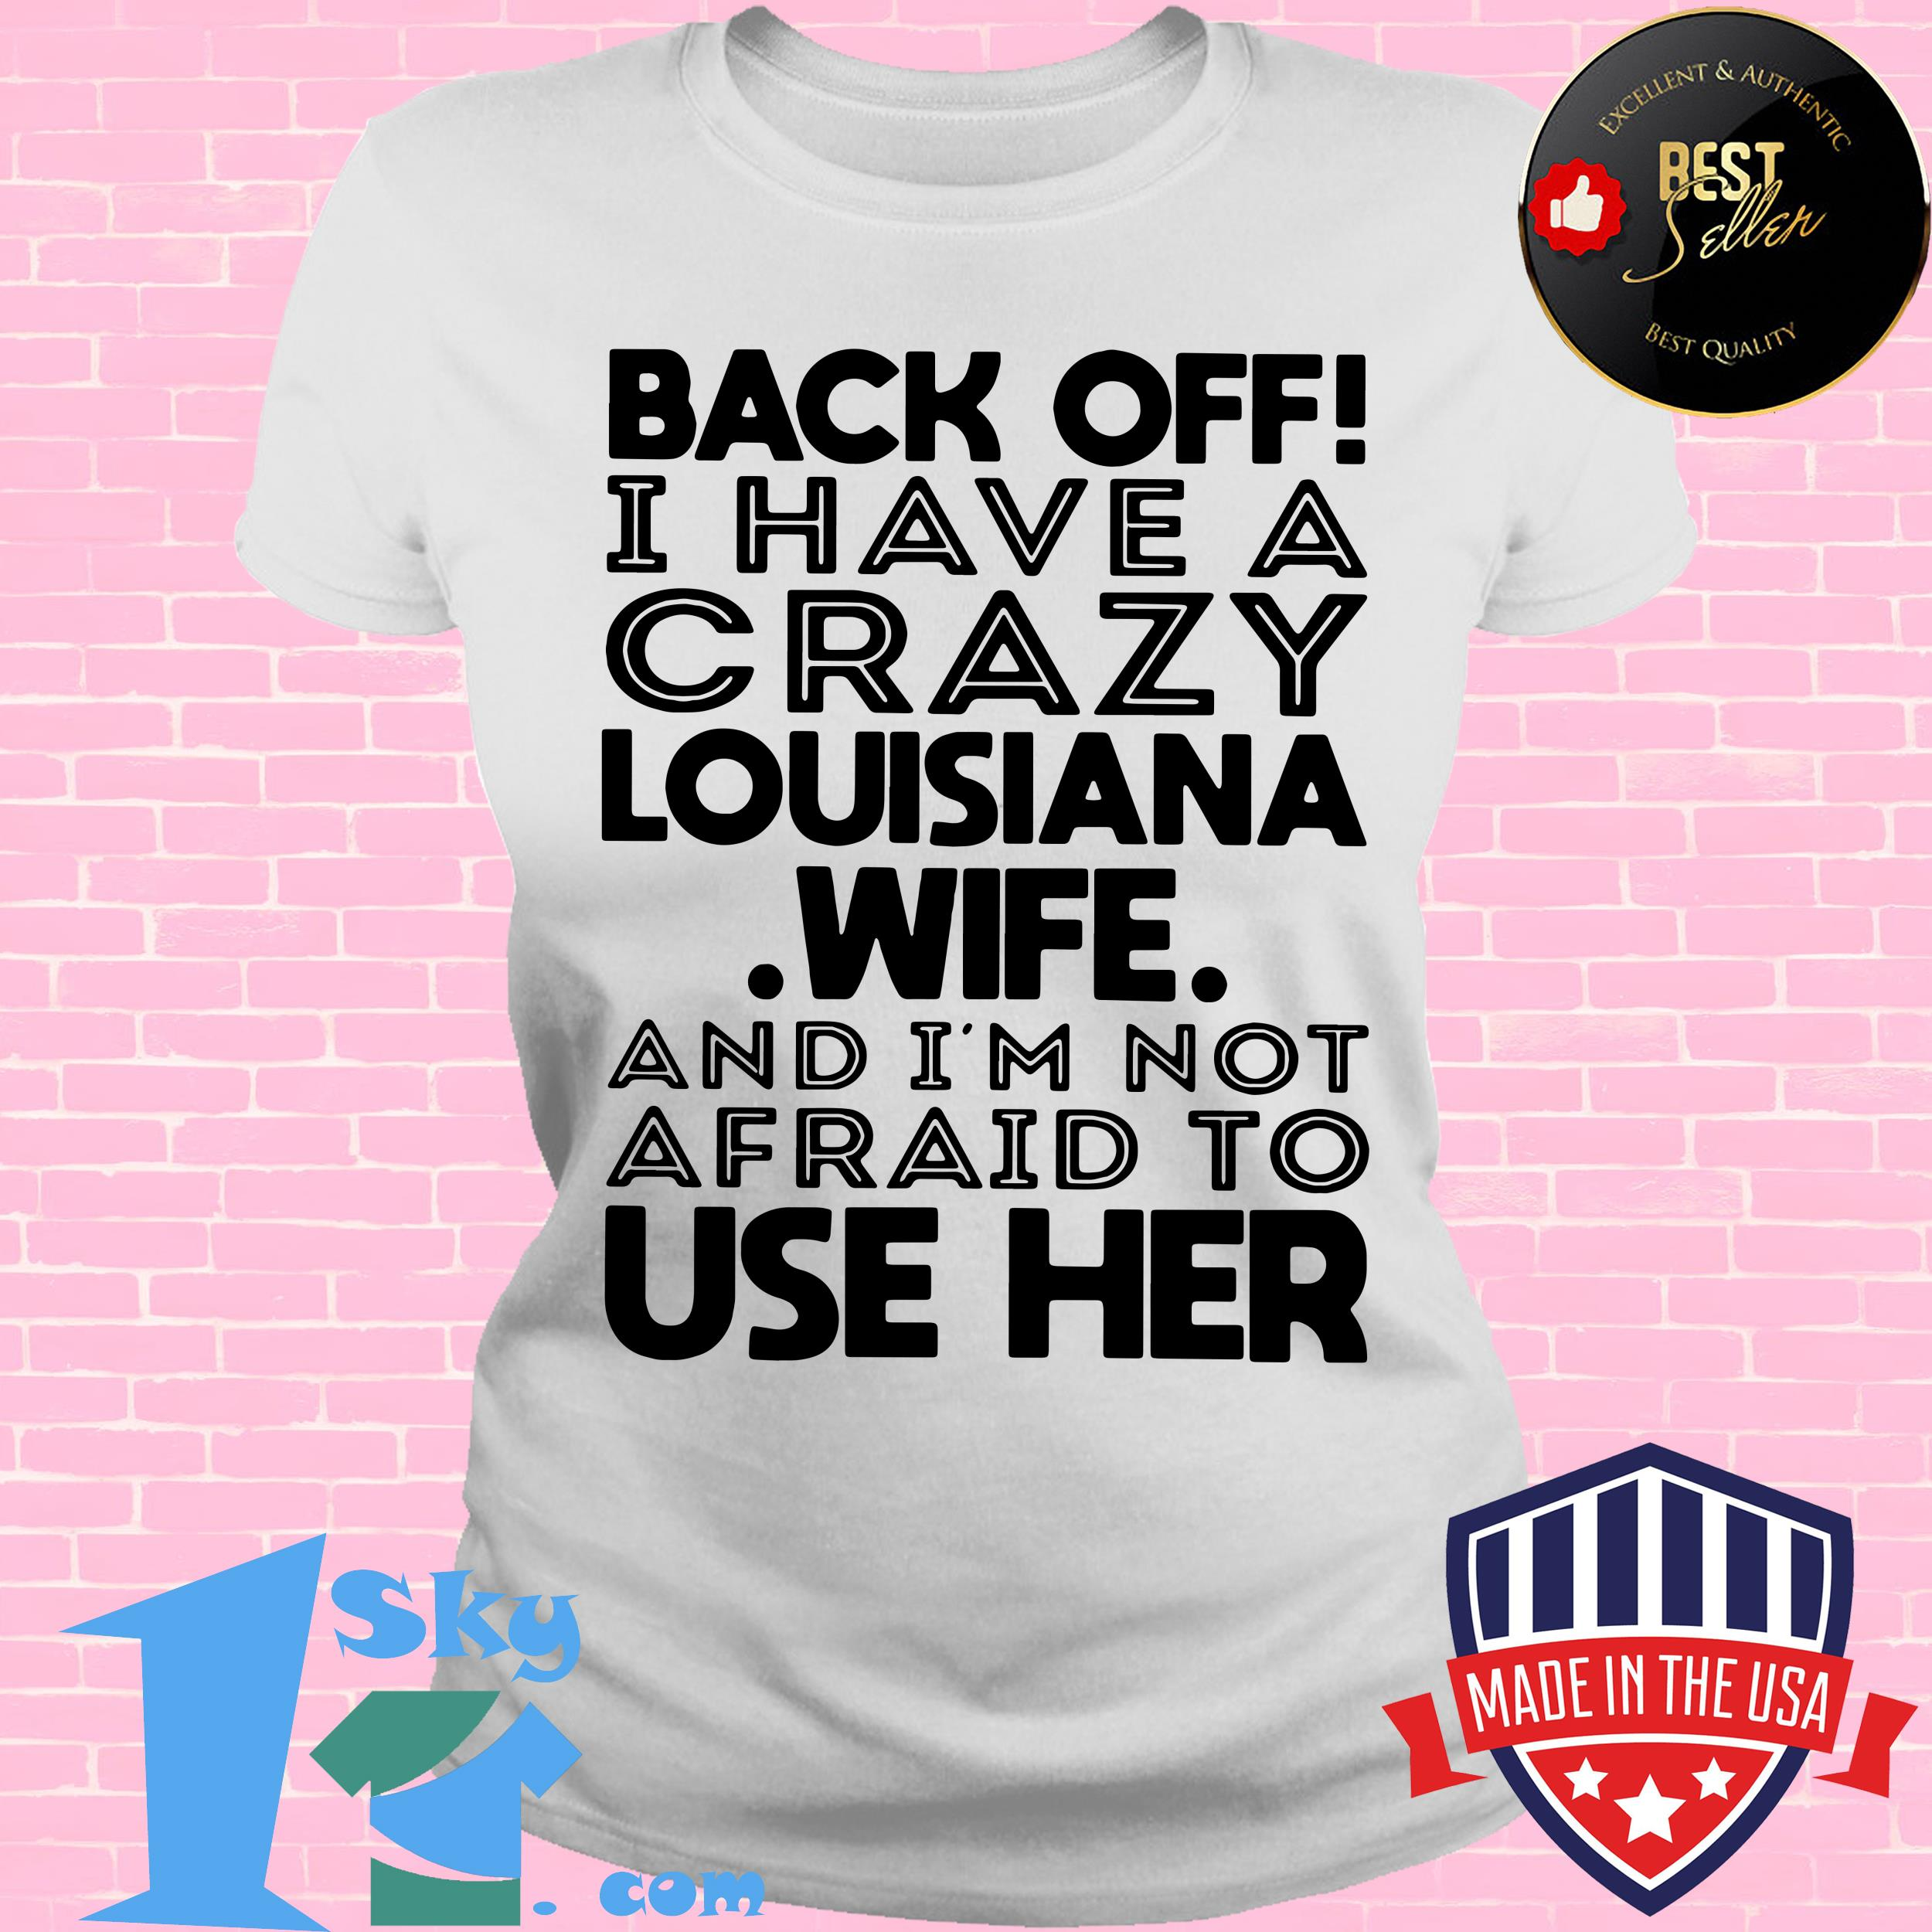 back off i have a crazy louisiana wife and i am not afraid to use her ladies tee - Back Off I Have A Crazy Louisiana Wife And I Am Not Afraid To Use Her shirt